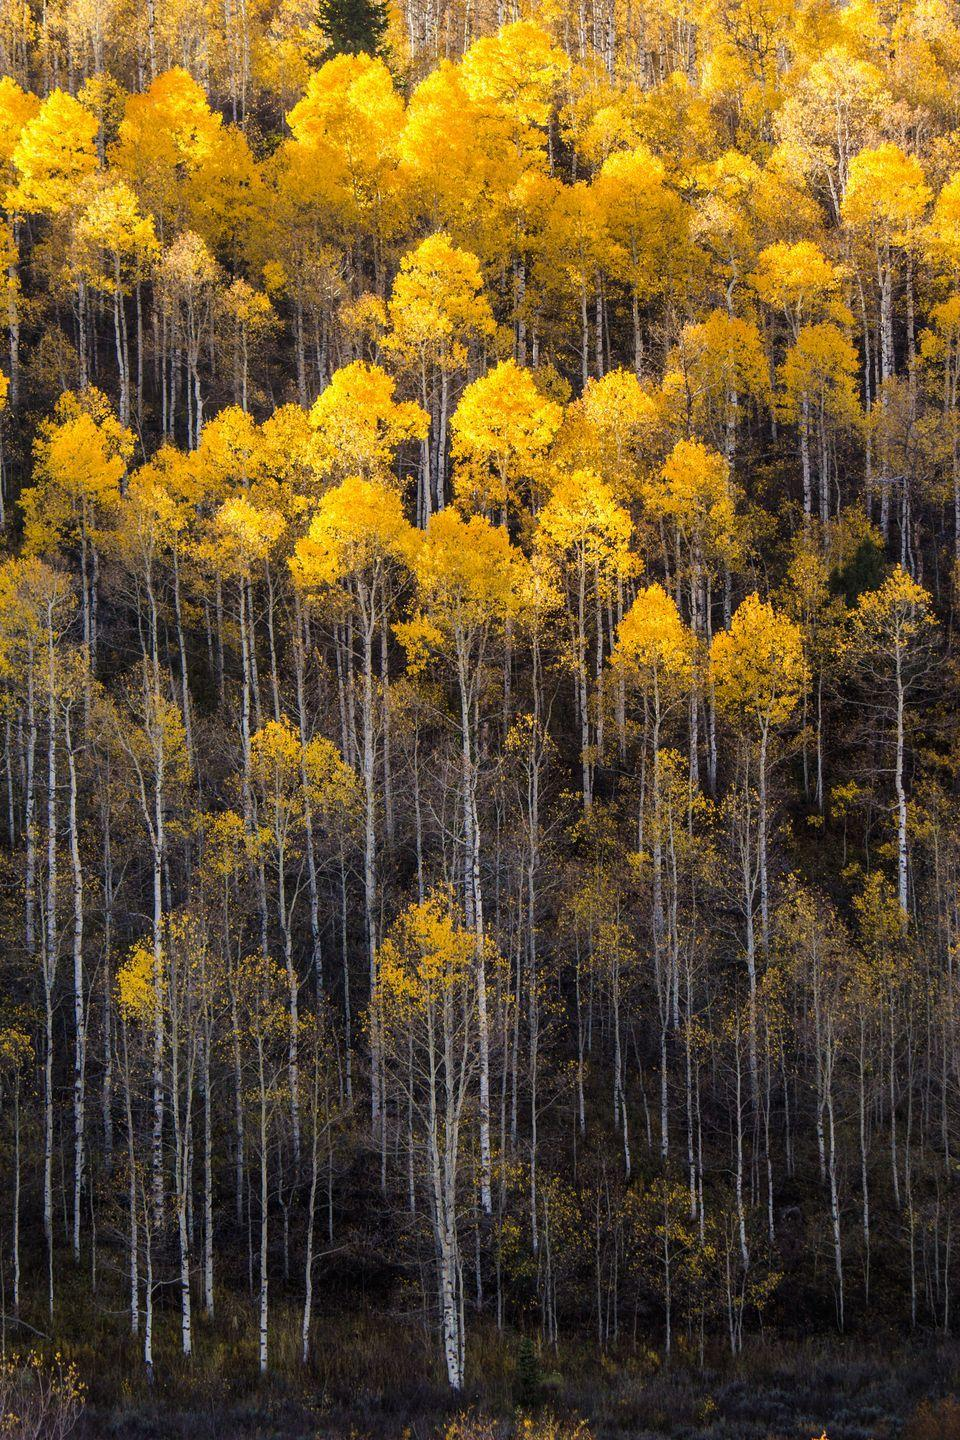 "<p>Pando (Latin for ""I spread out"") is a group of genetically identical quaking aspens in Utah with an interconnected root system. It's an estimated 80,000 years old and takes up more than 100 acres. </p>"